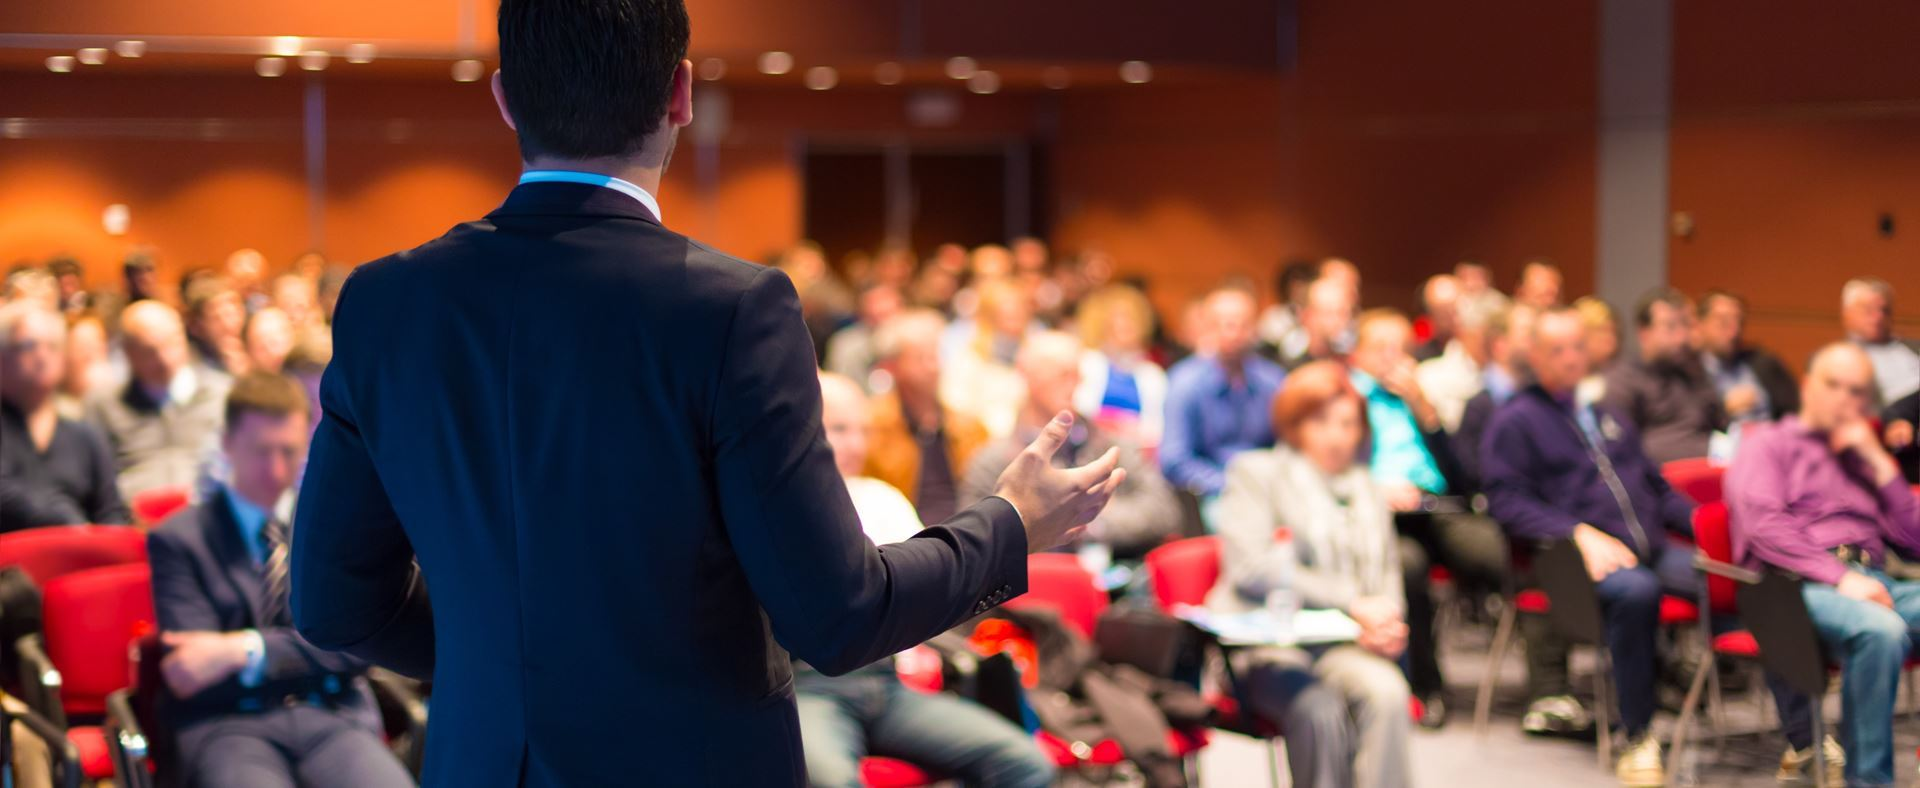 PR Tips For Getting Speaking Engagements